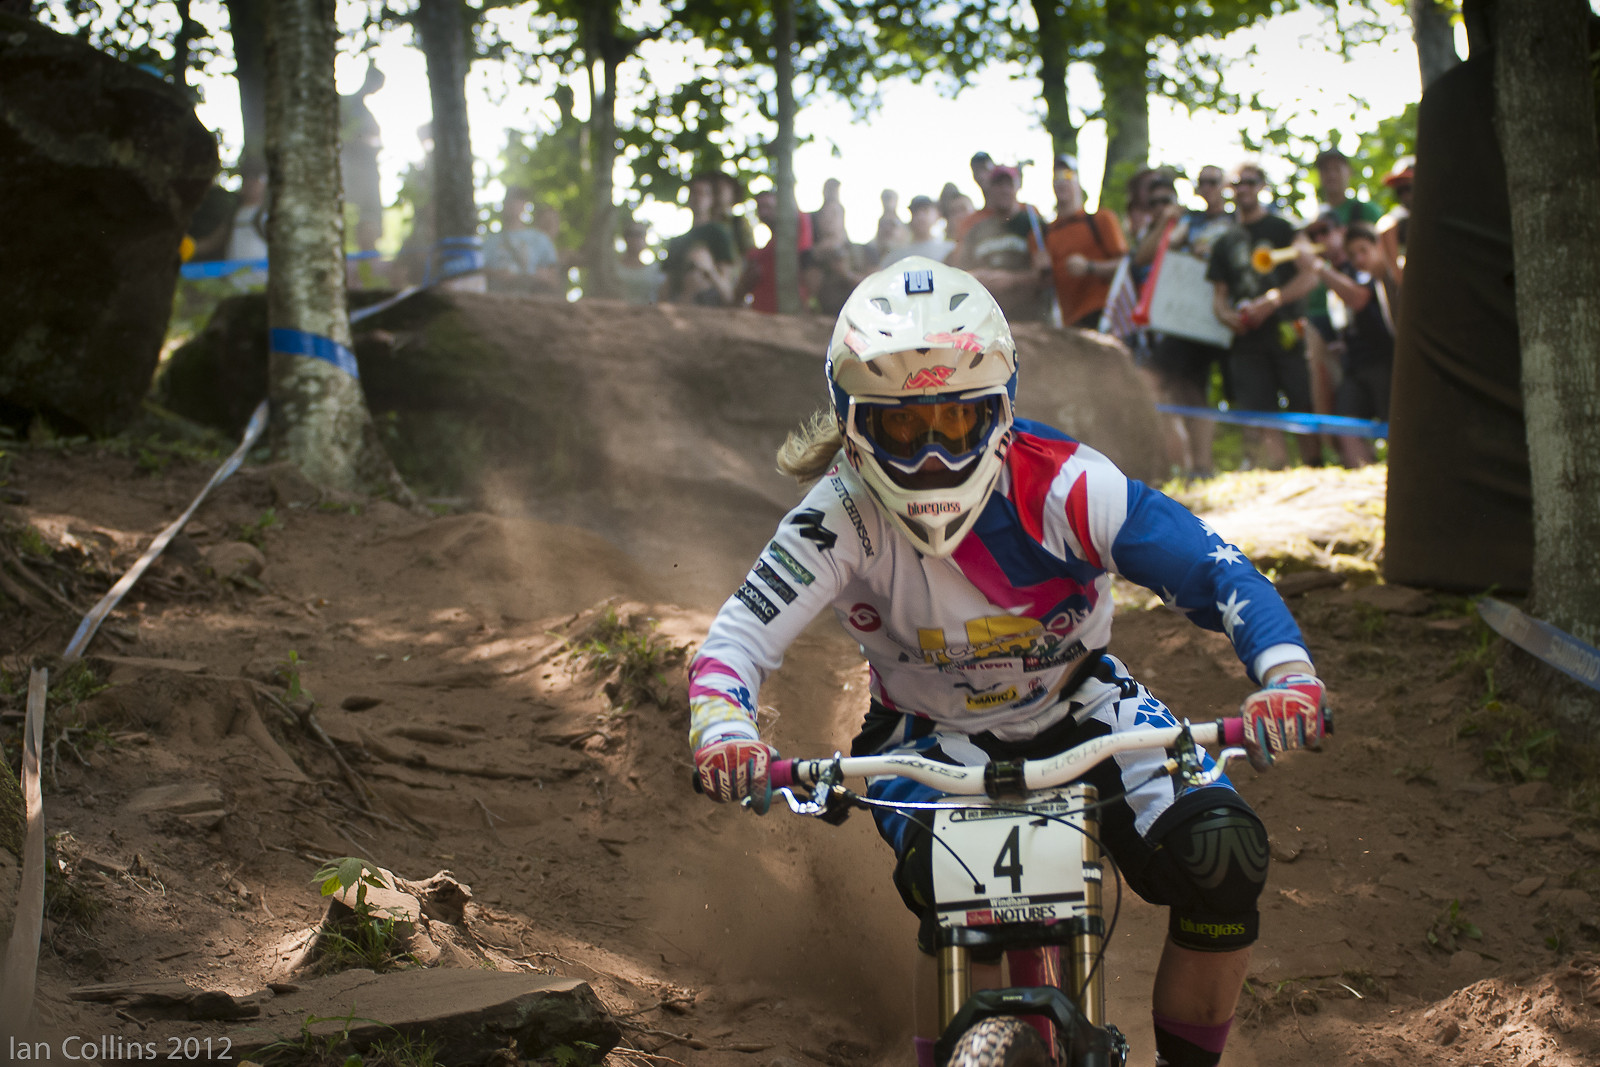 Tracey Hannah - Ian Collins - Mountain Biking Pictures - Vital MTB